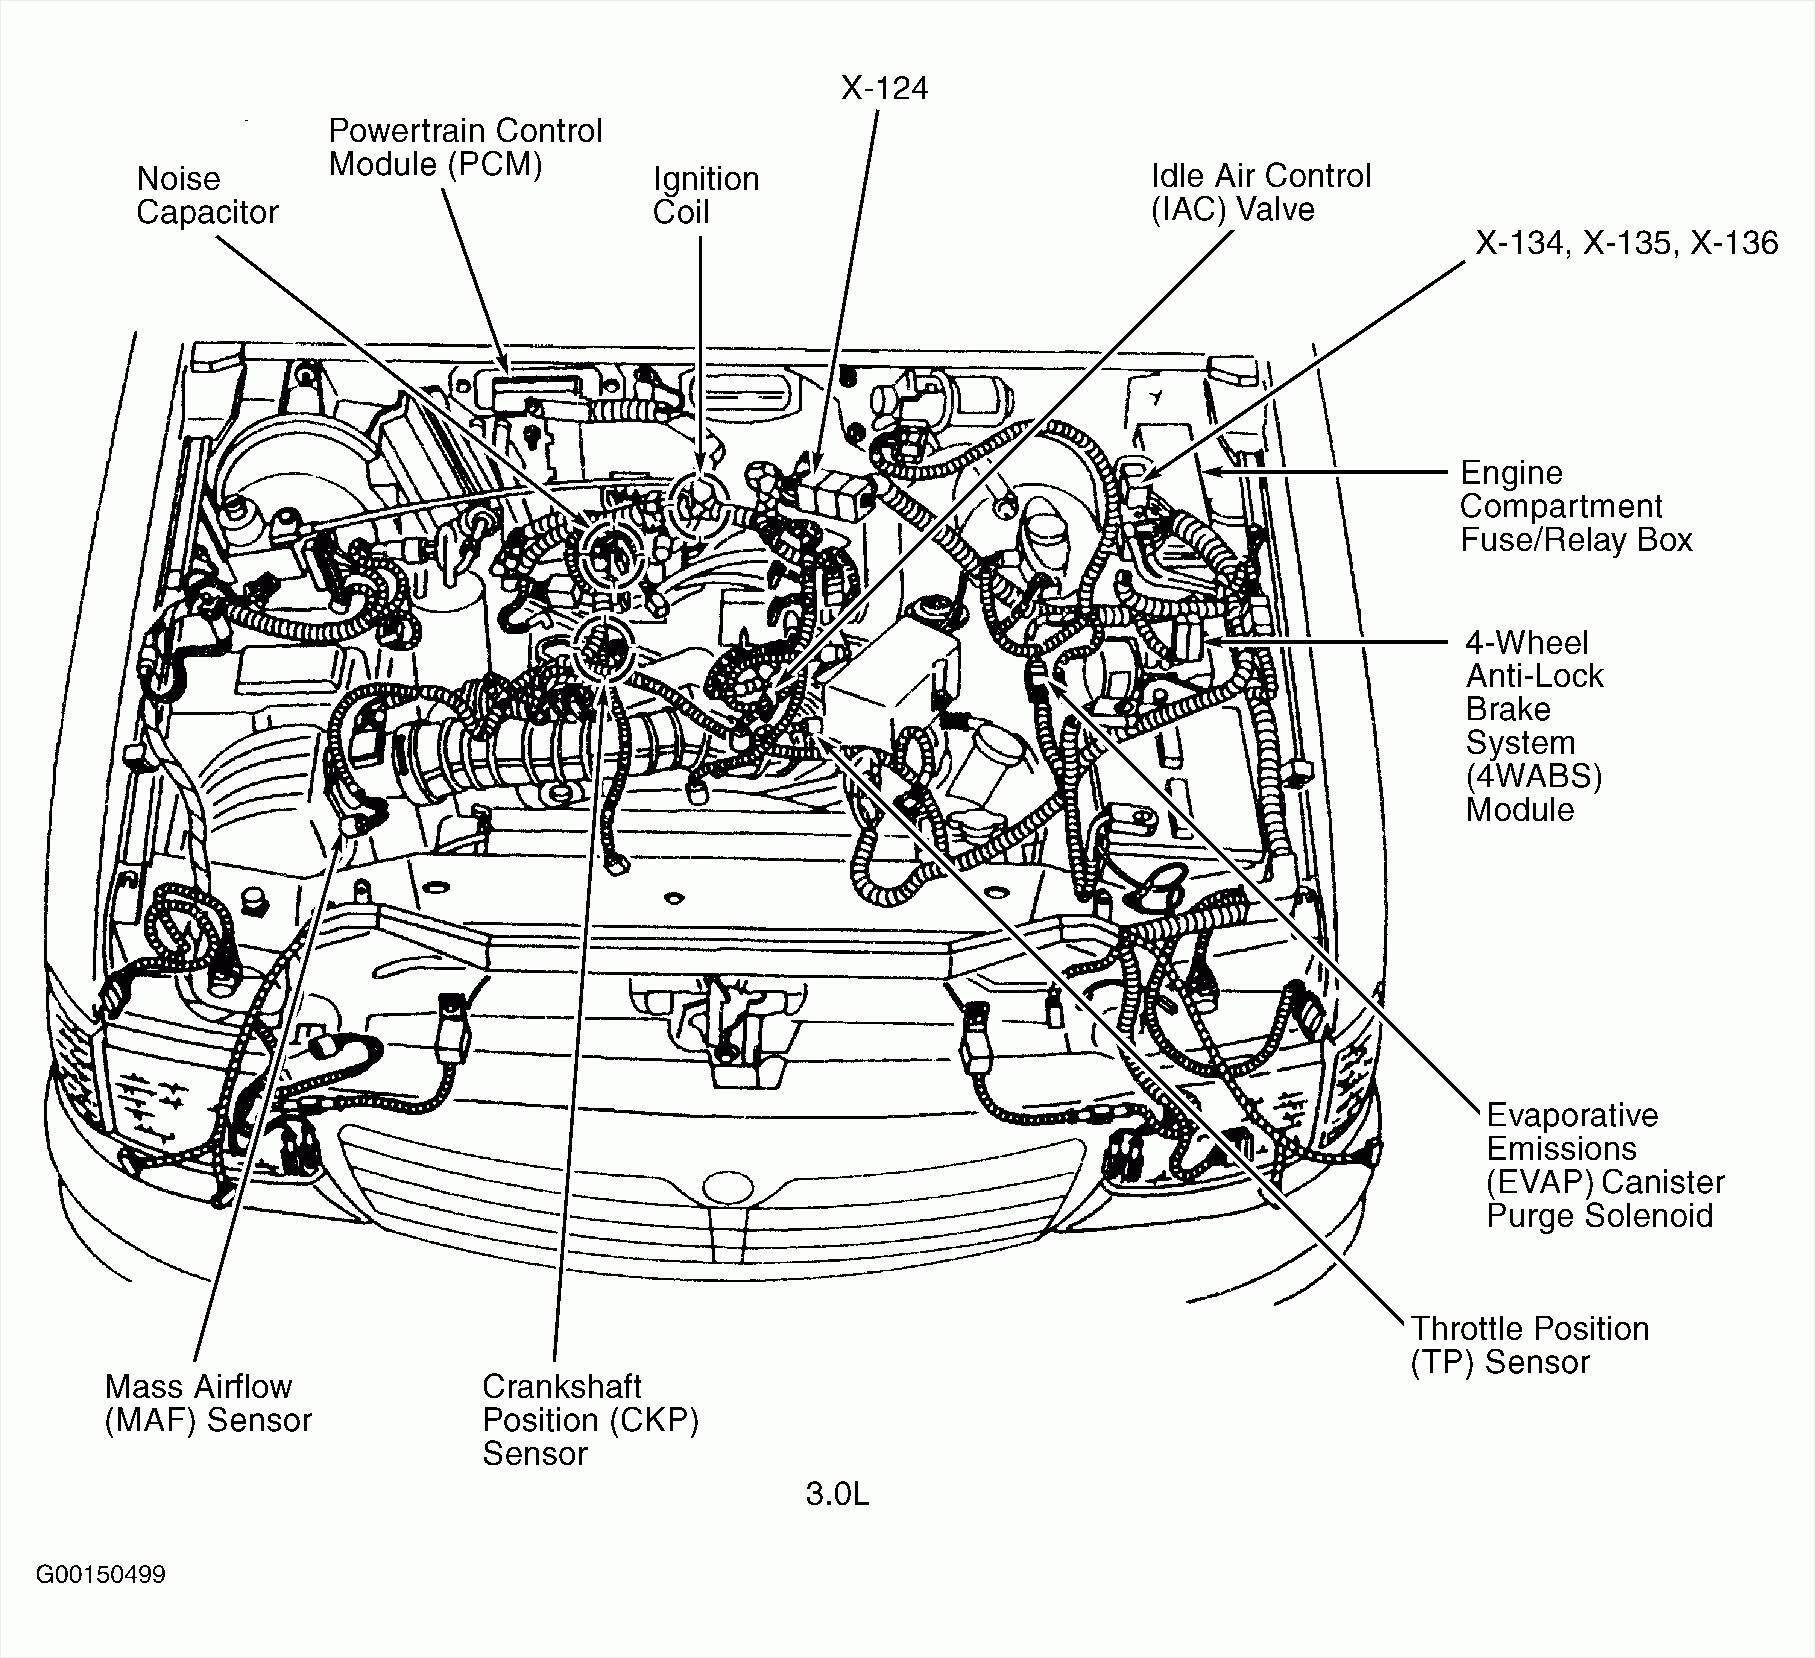 Vw Pat 3 6 Engine Diagram Wiring Diagrams Tell Tunnel A Tell Tunnel A Alcuoredeldiabete It